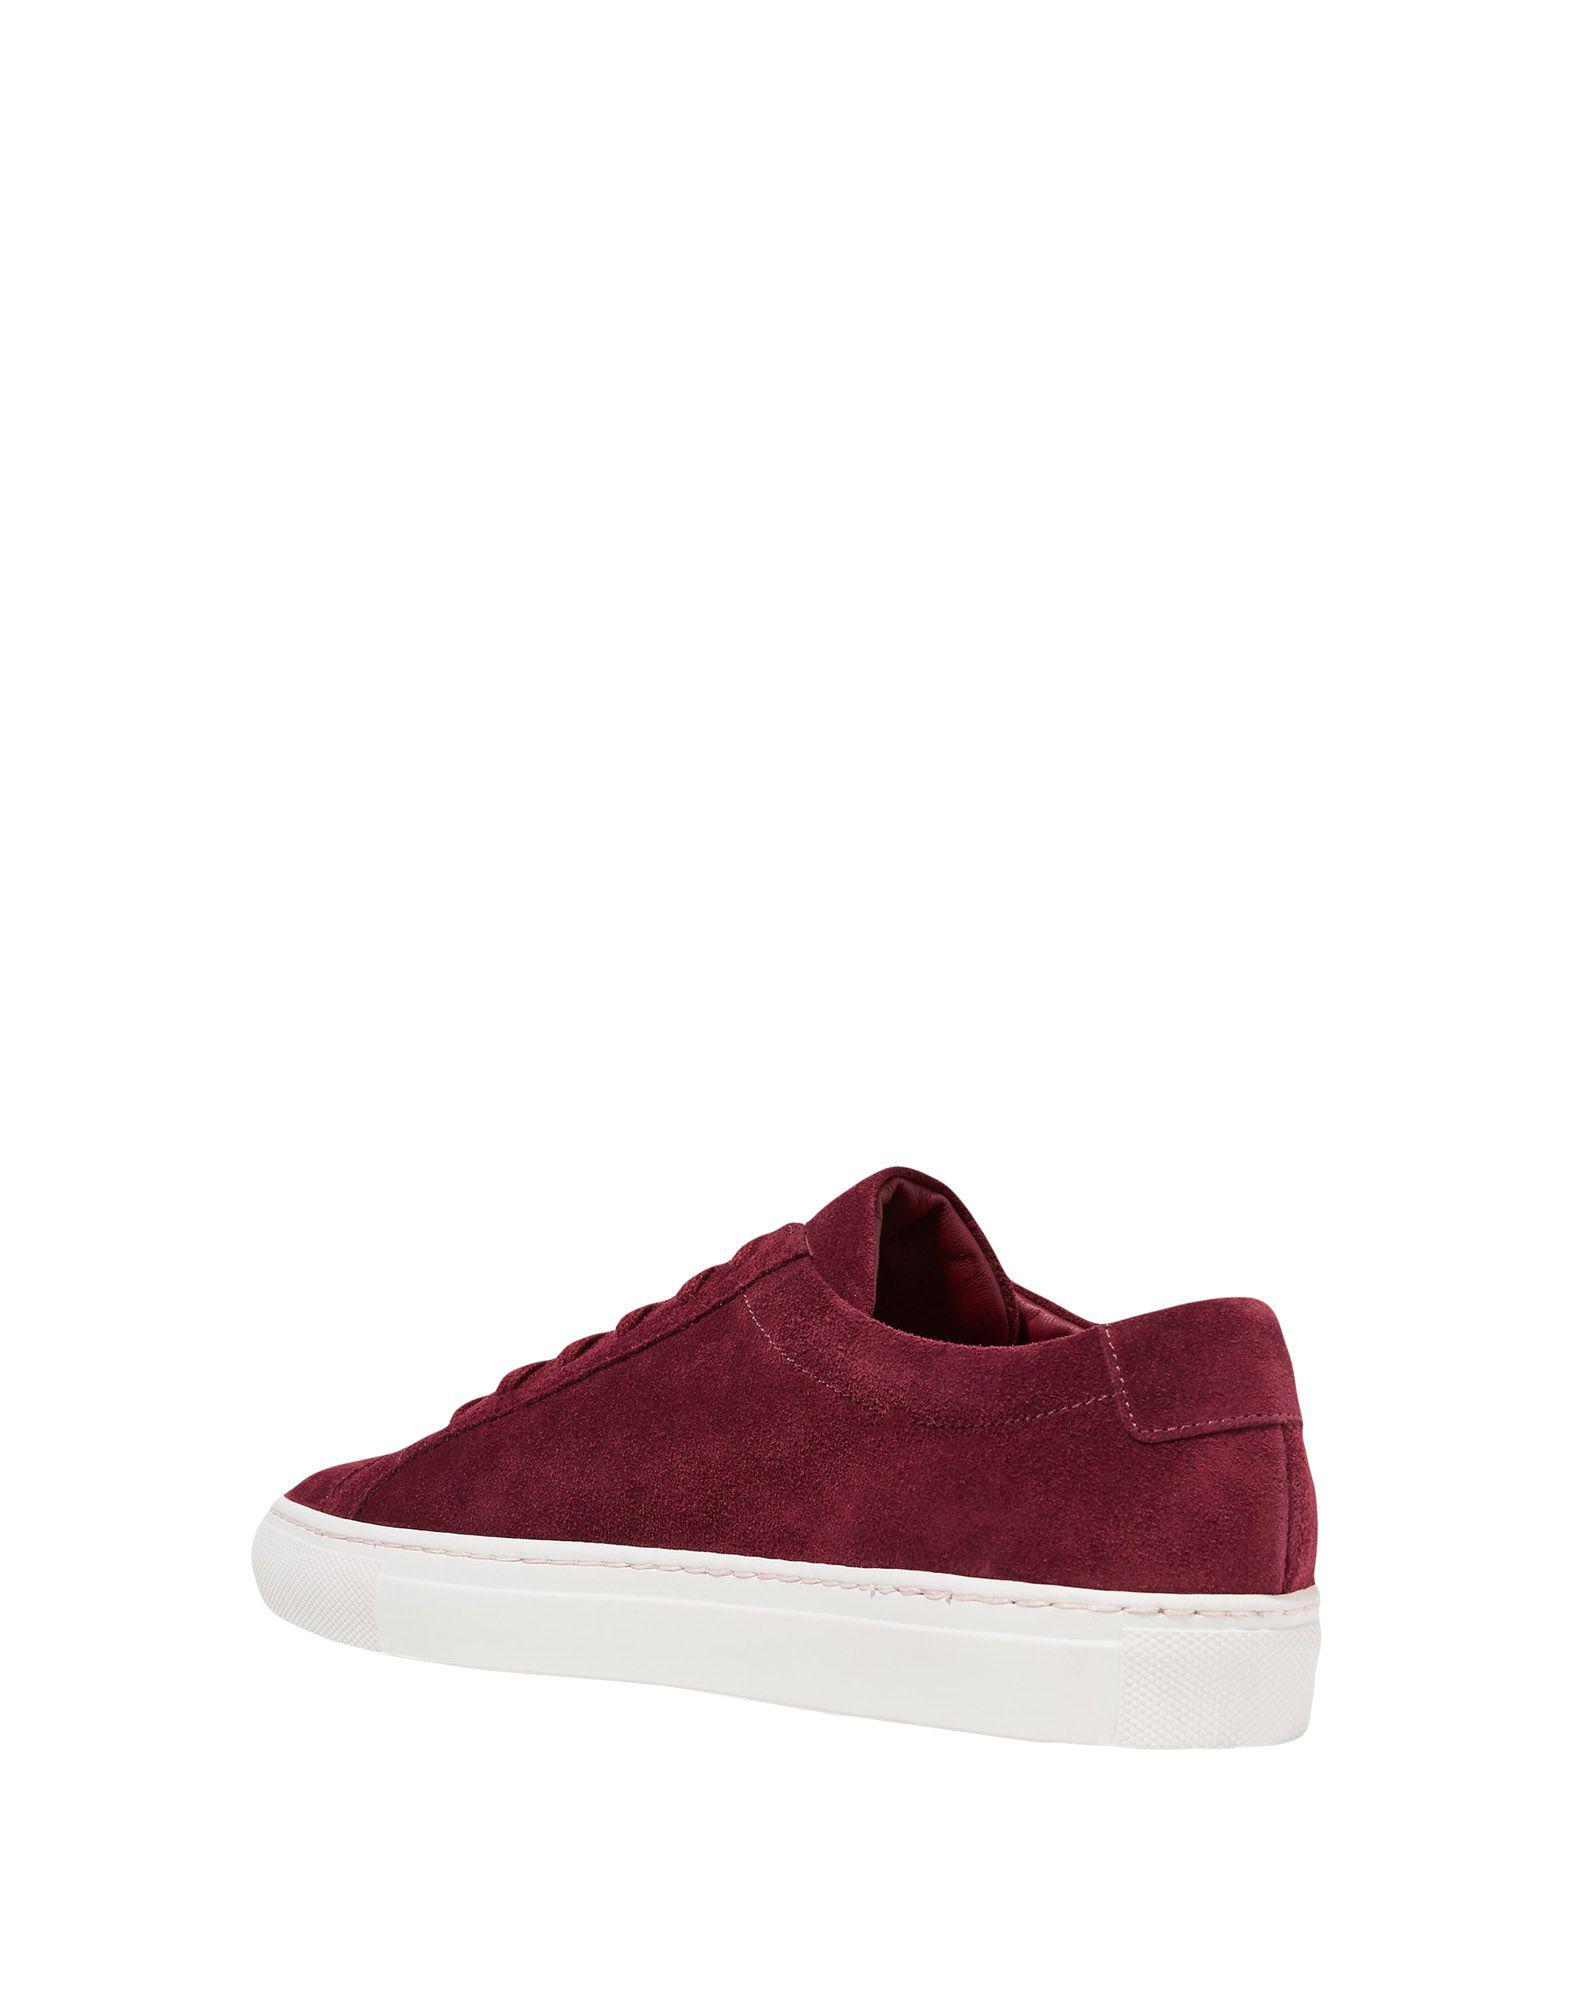 Common Projects Suede Low-tops & Sneakers in Maroon (Purple)